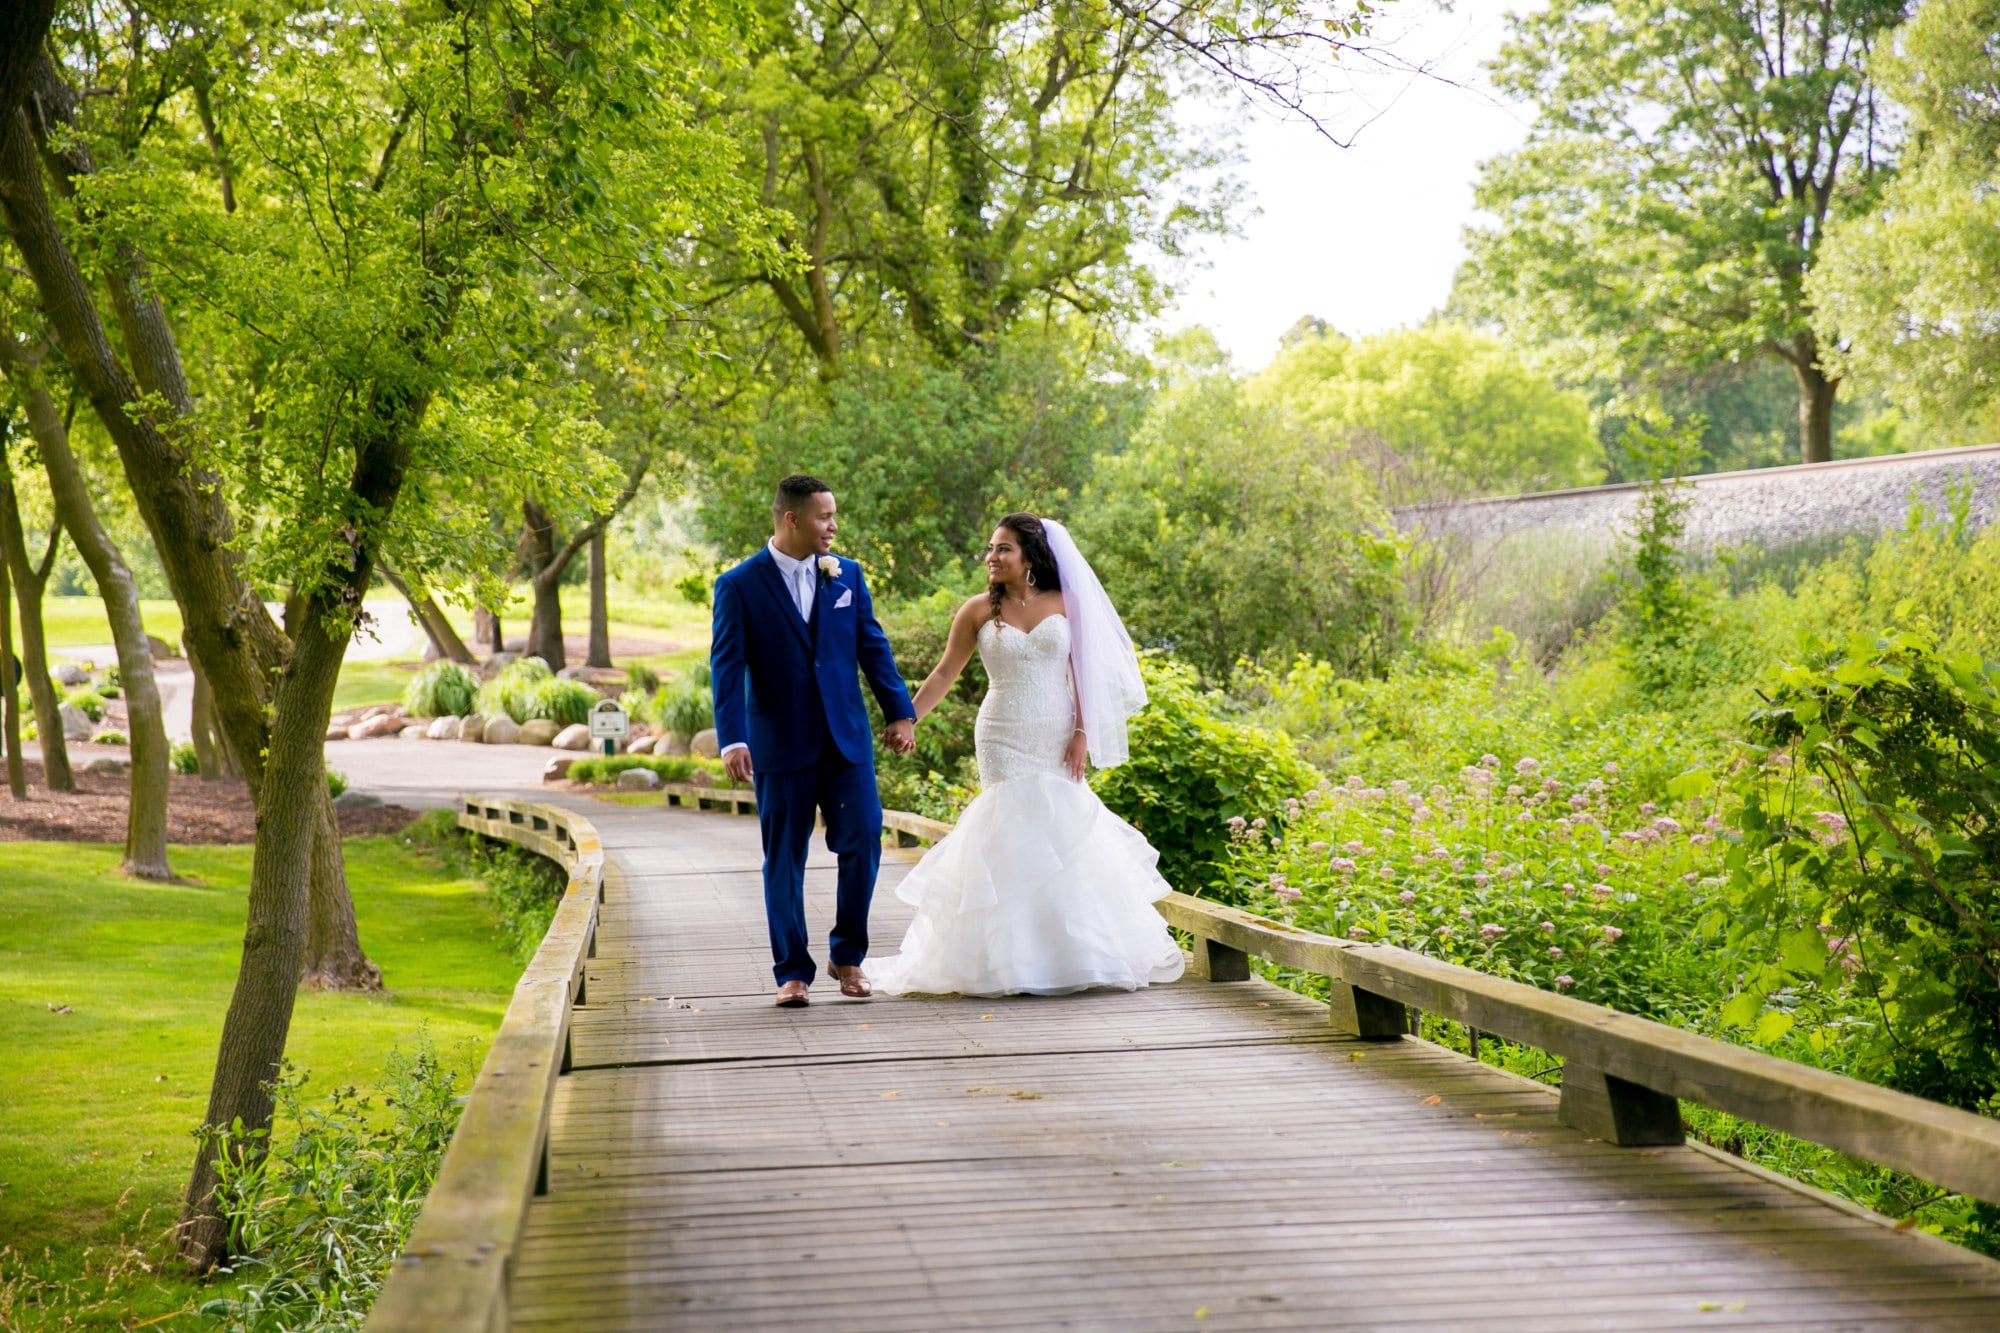 bride and groom walking on wooden bridge during daytime